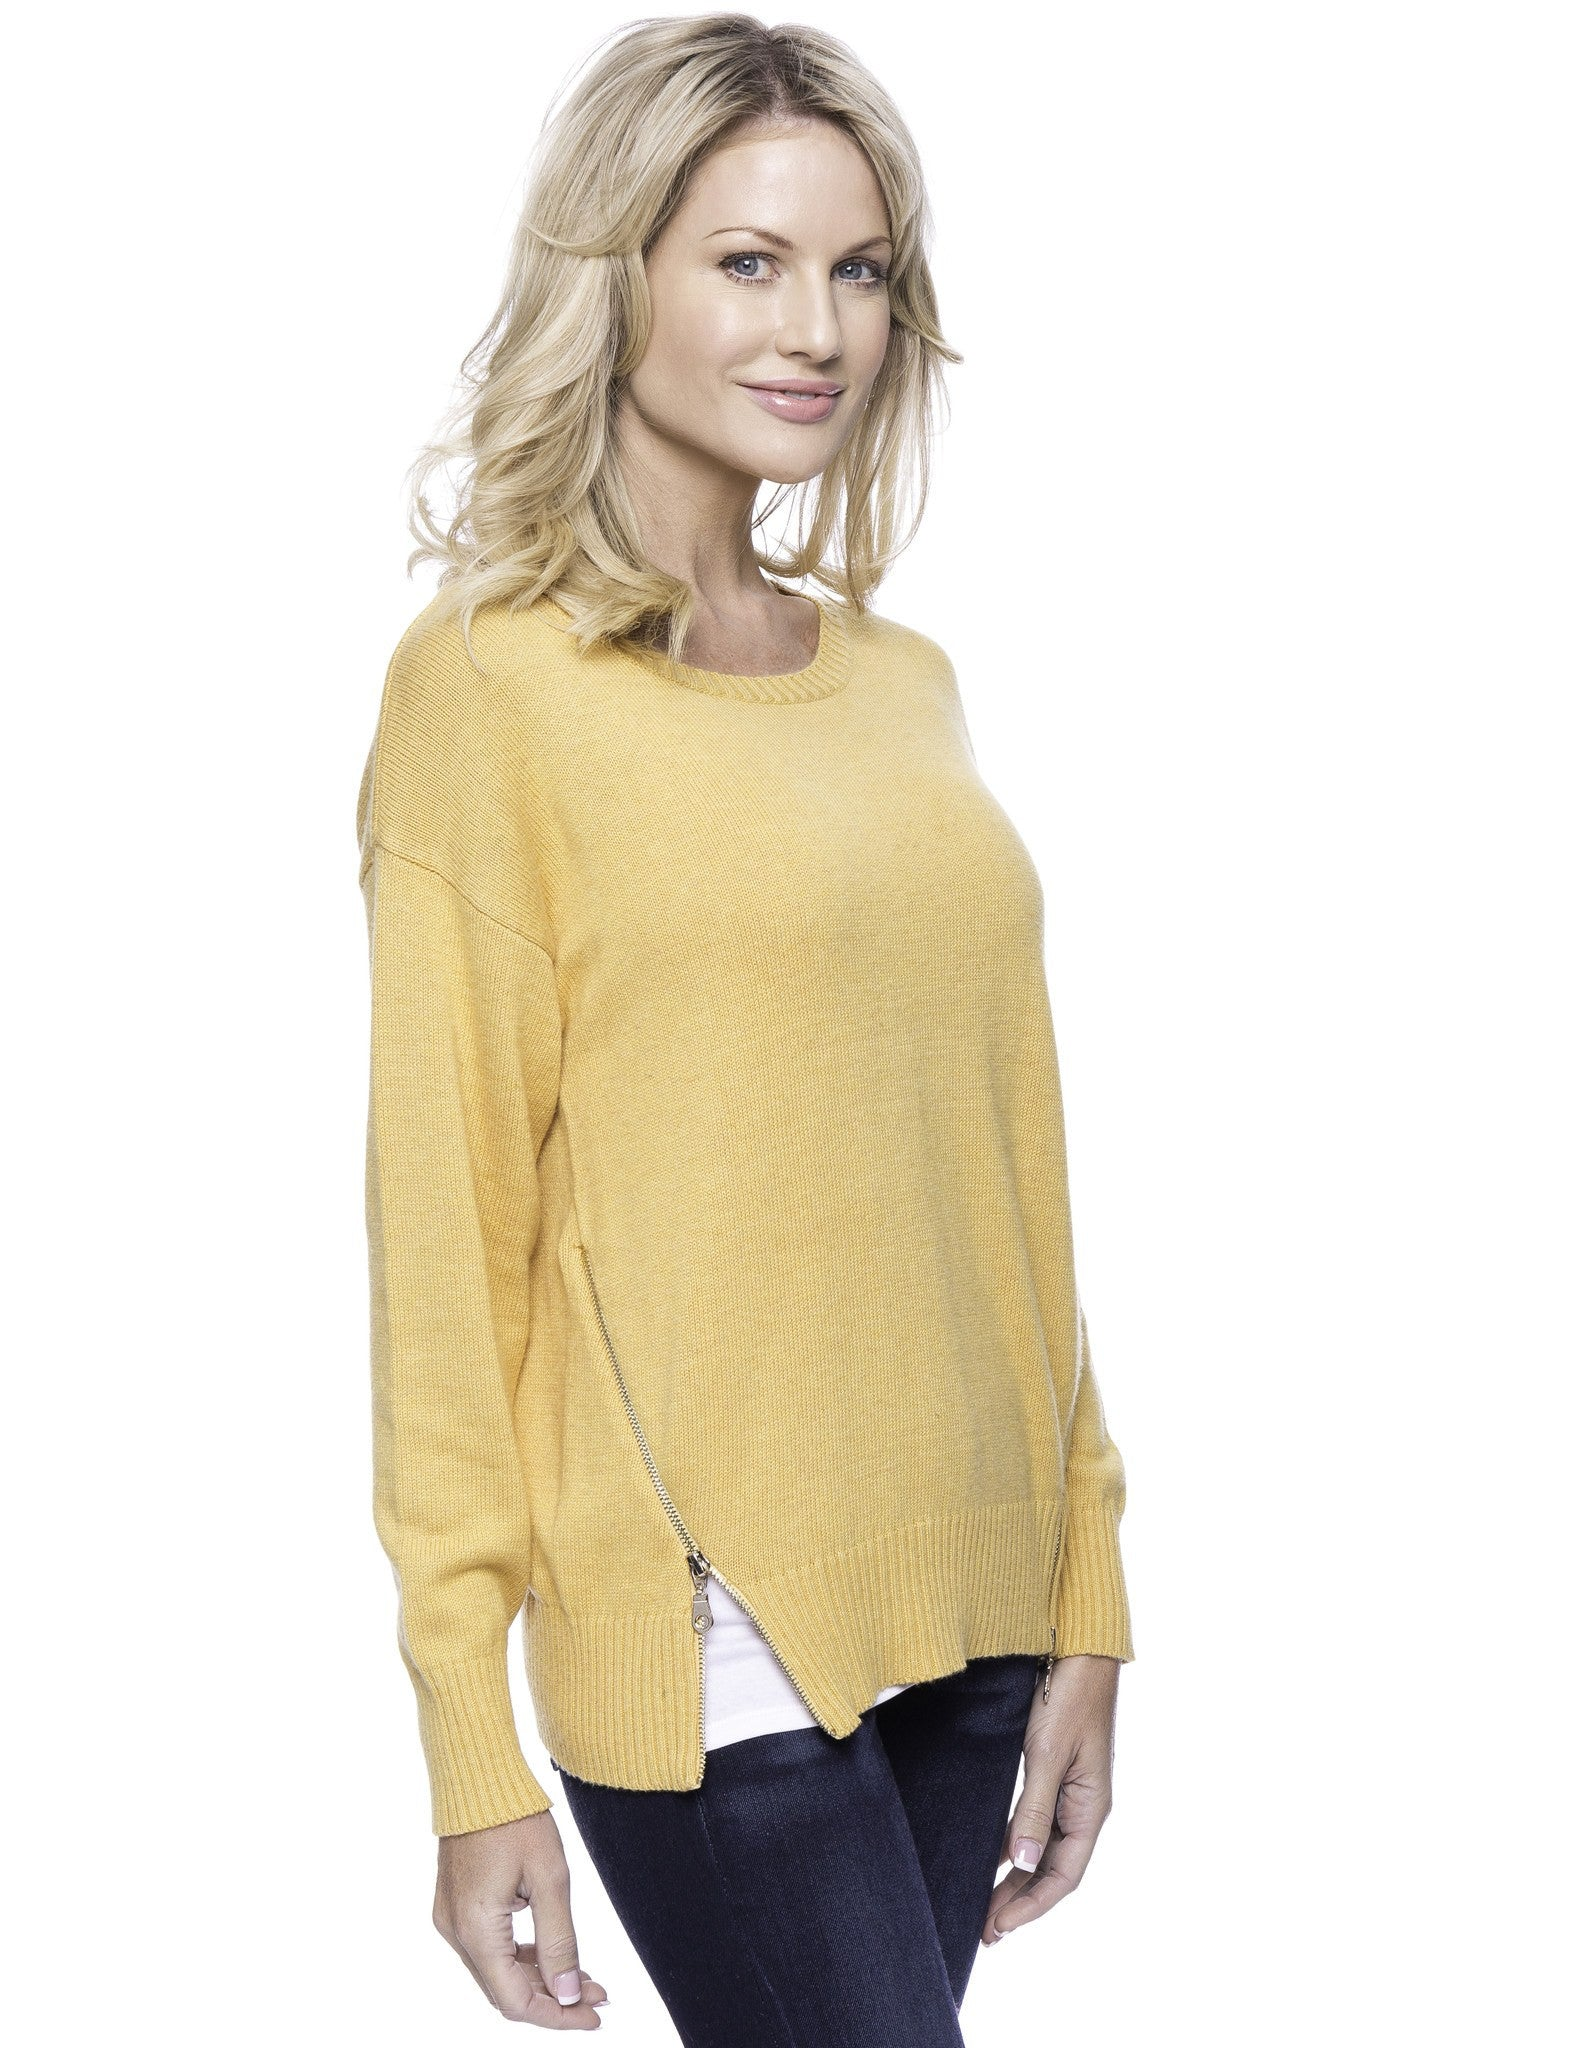 Tocco Reale Women's Cashmere Blend Crew Neck Sweater with Side Zip - Mustard